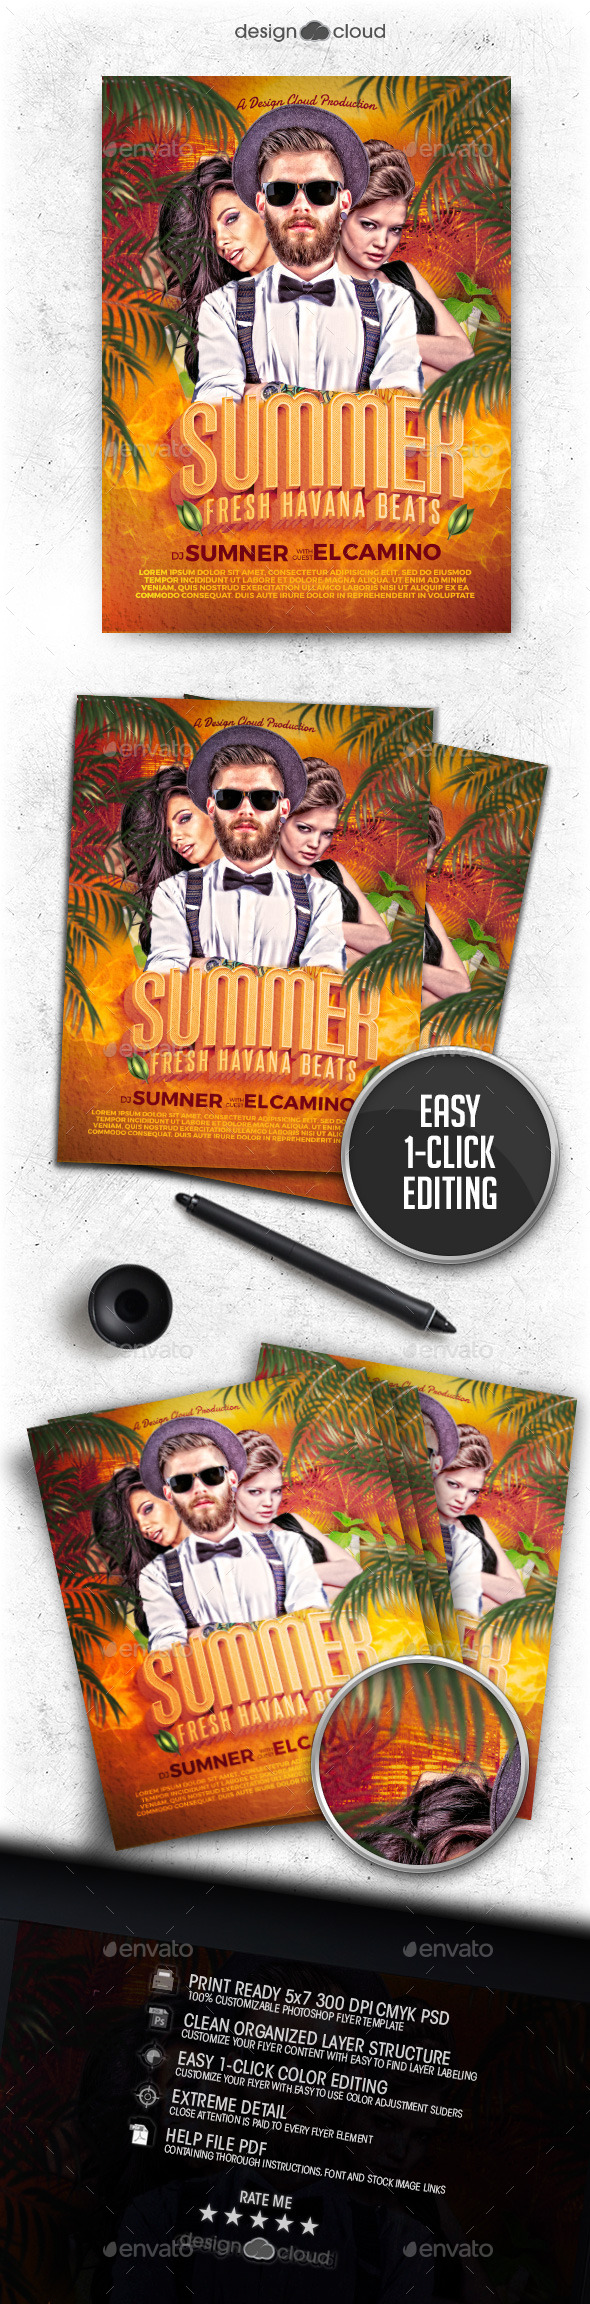 GraphicRiver Summer DJ Fresh Havana Beats Flyer Template 11790770